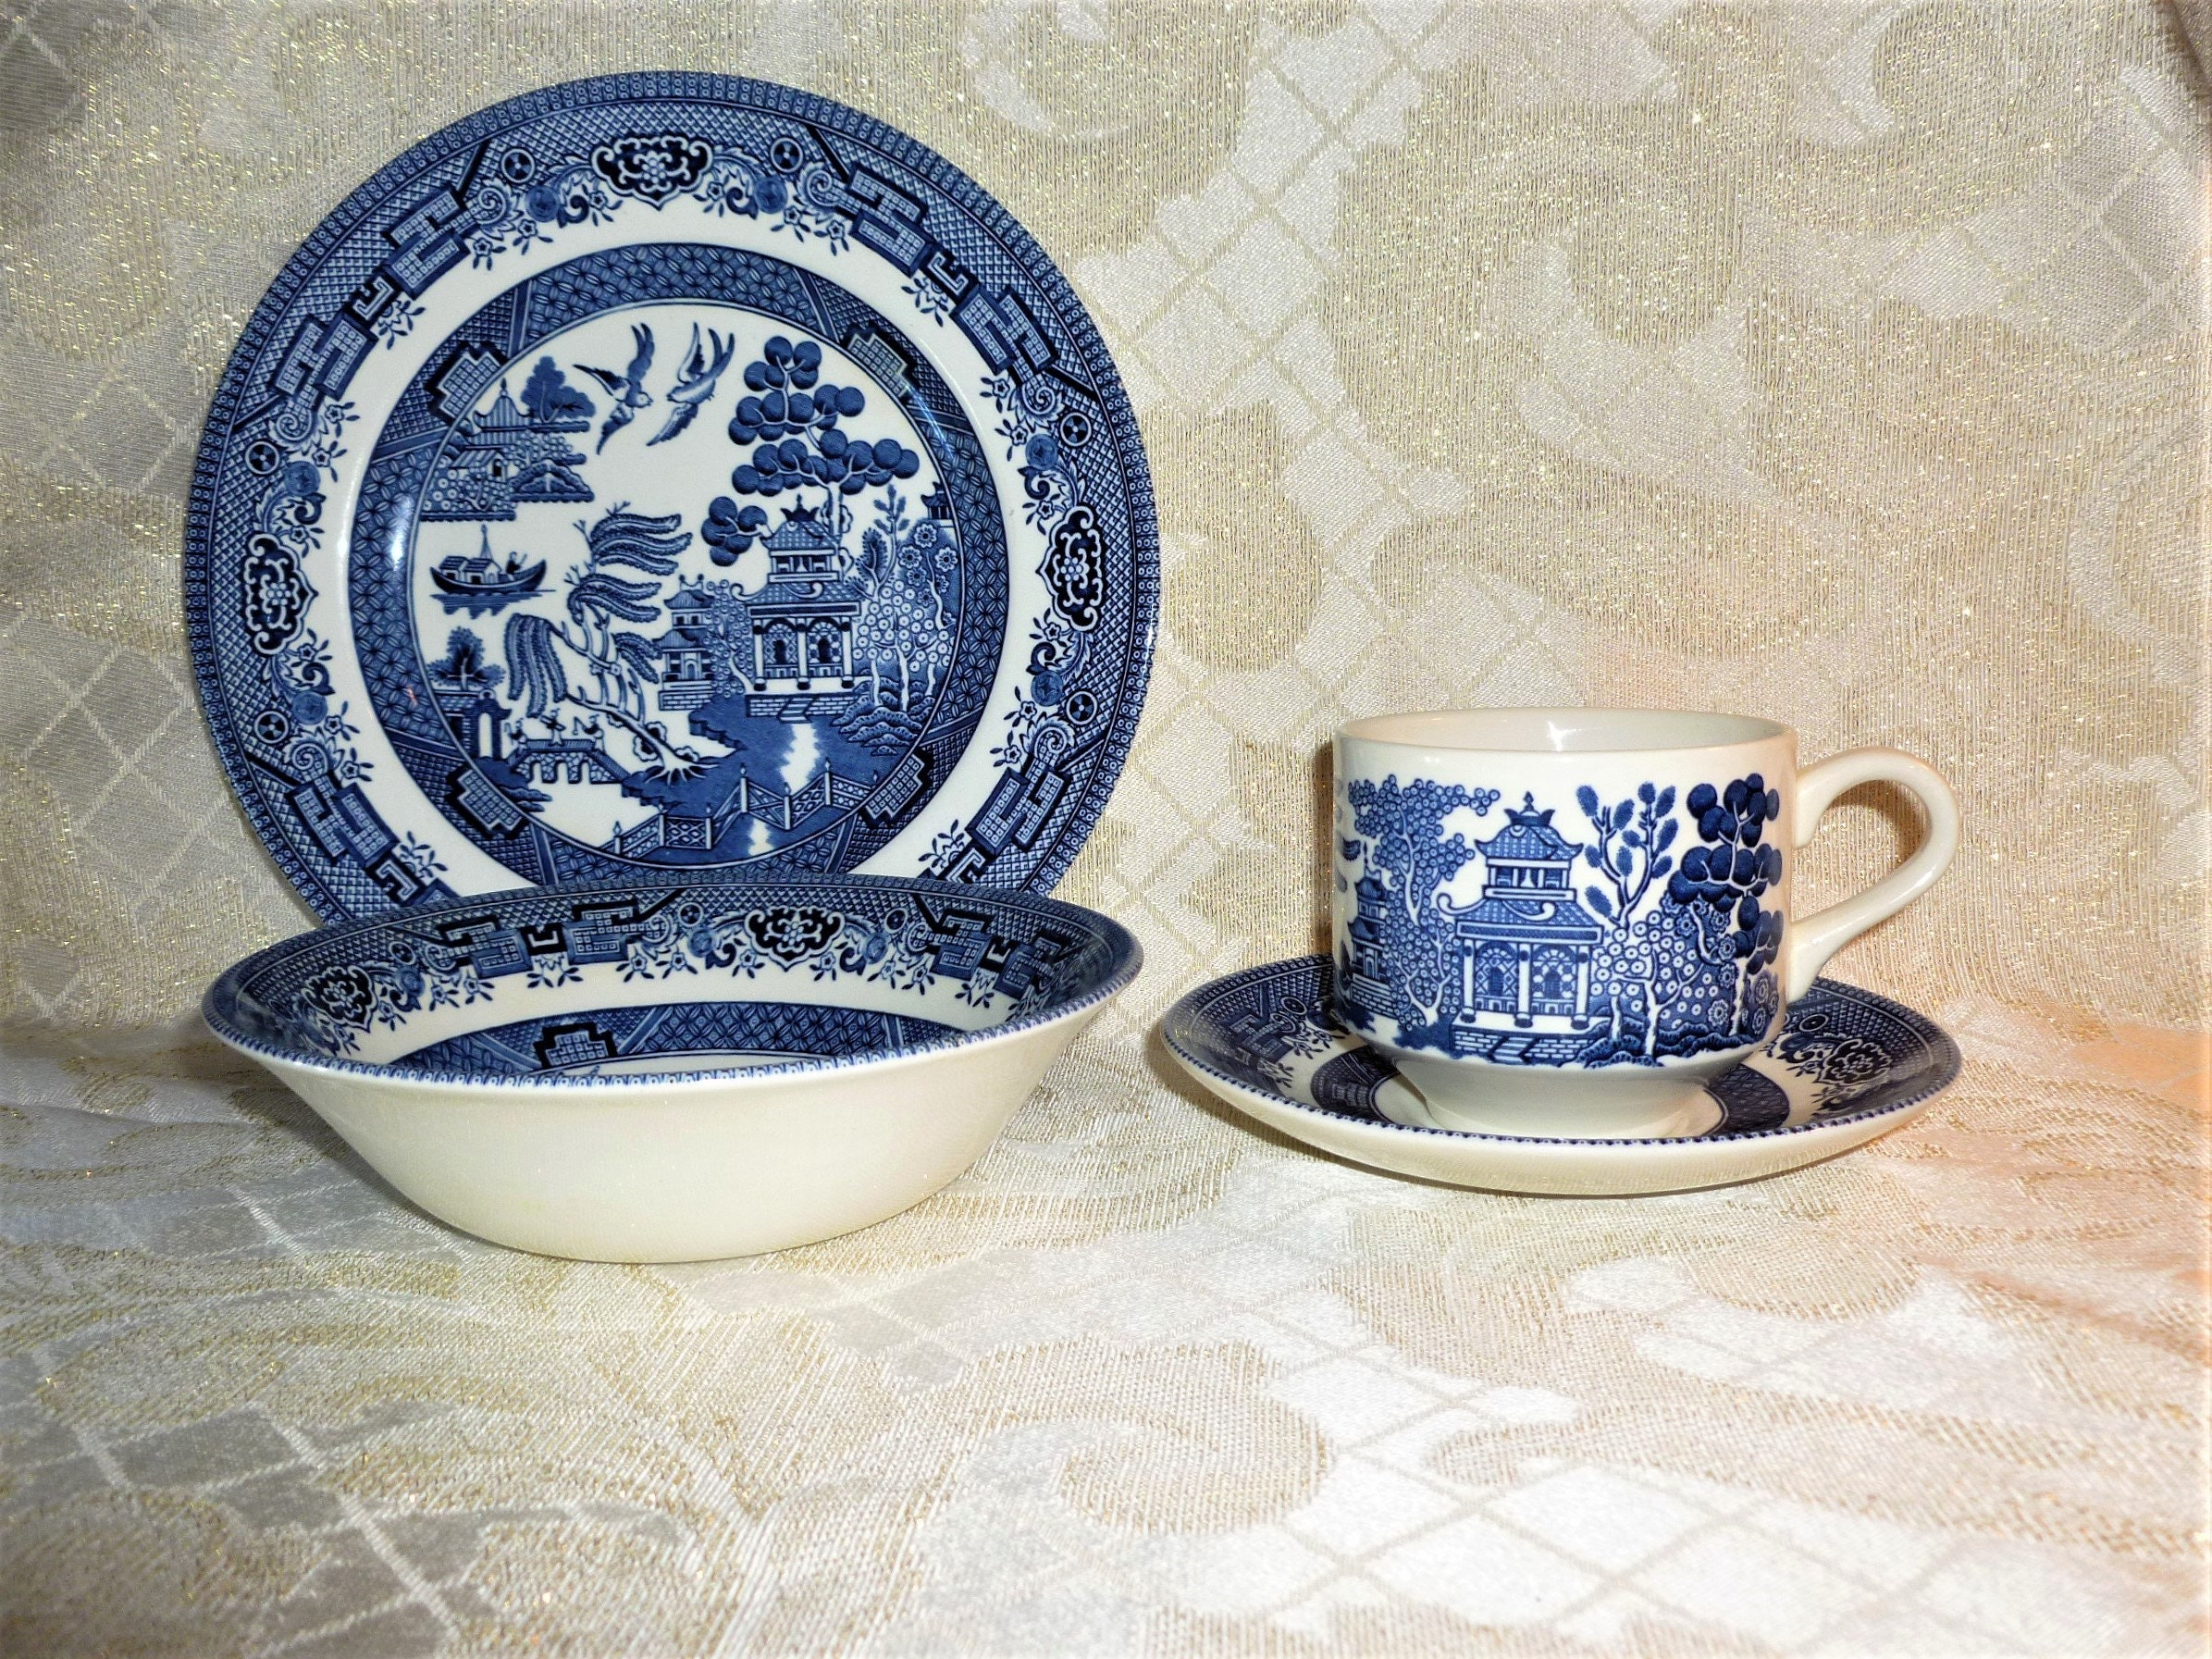 Carmel Collectibles Offers A Vintage Churchill China